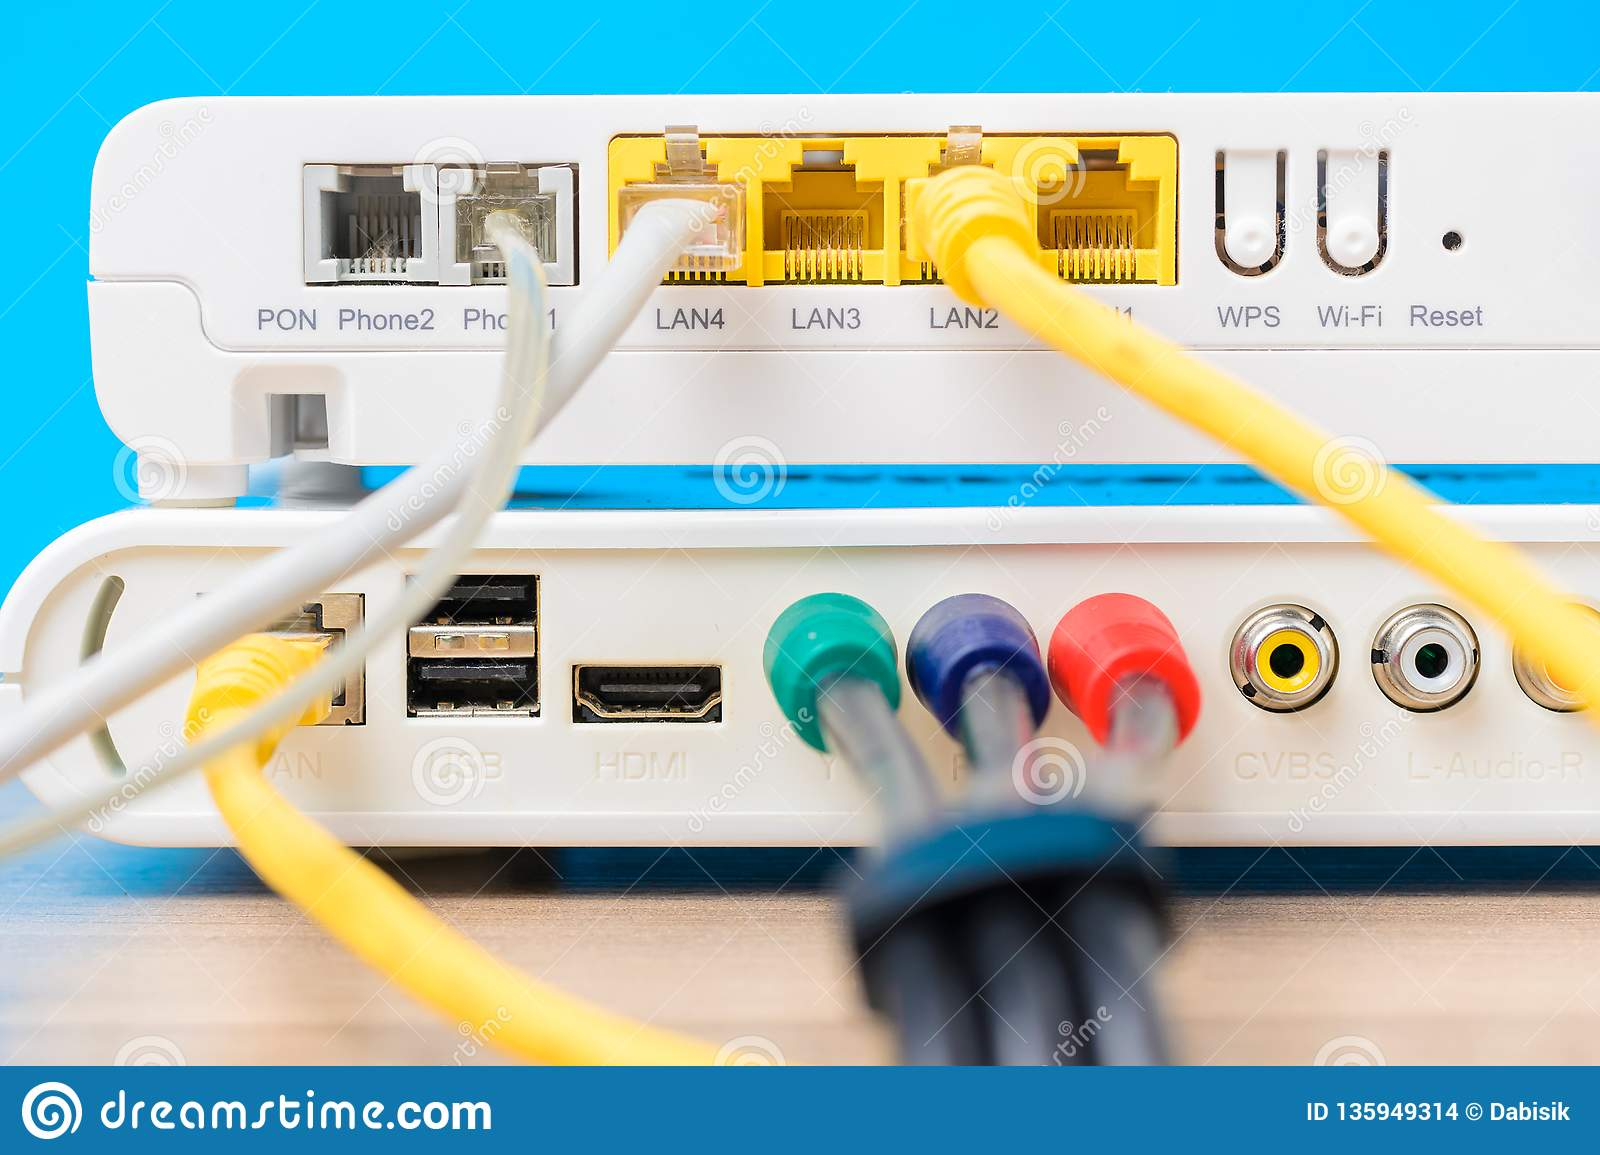 Home Wireless Router With Ethernet Cables Plugged In On Blue